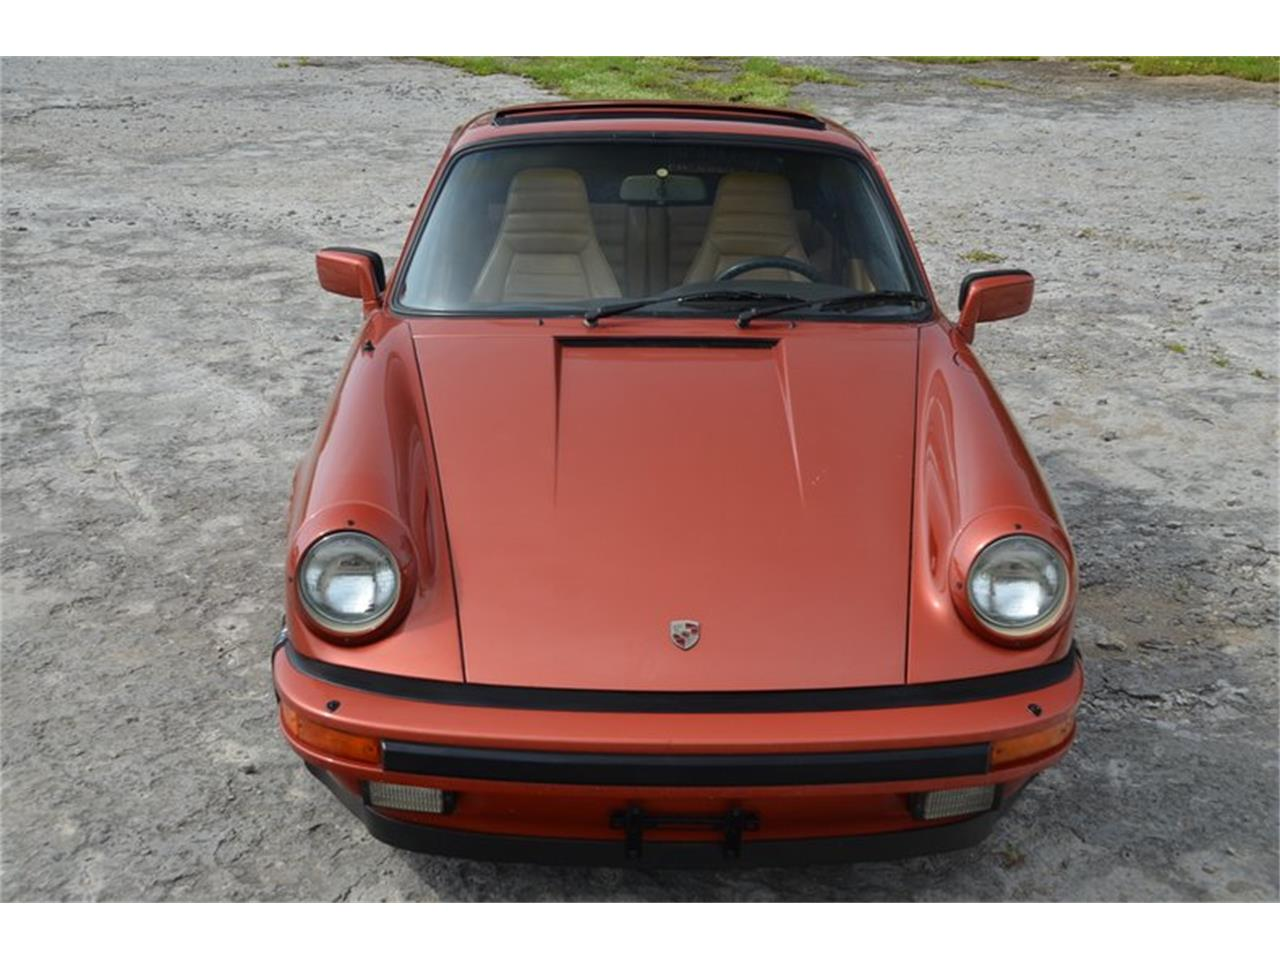 Large Picture of 1984 Porsche 911 located in Tennessee - $42,500.00 Offered by Frazier Motor Car Company - PX8U